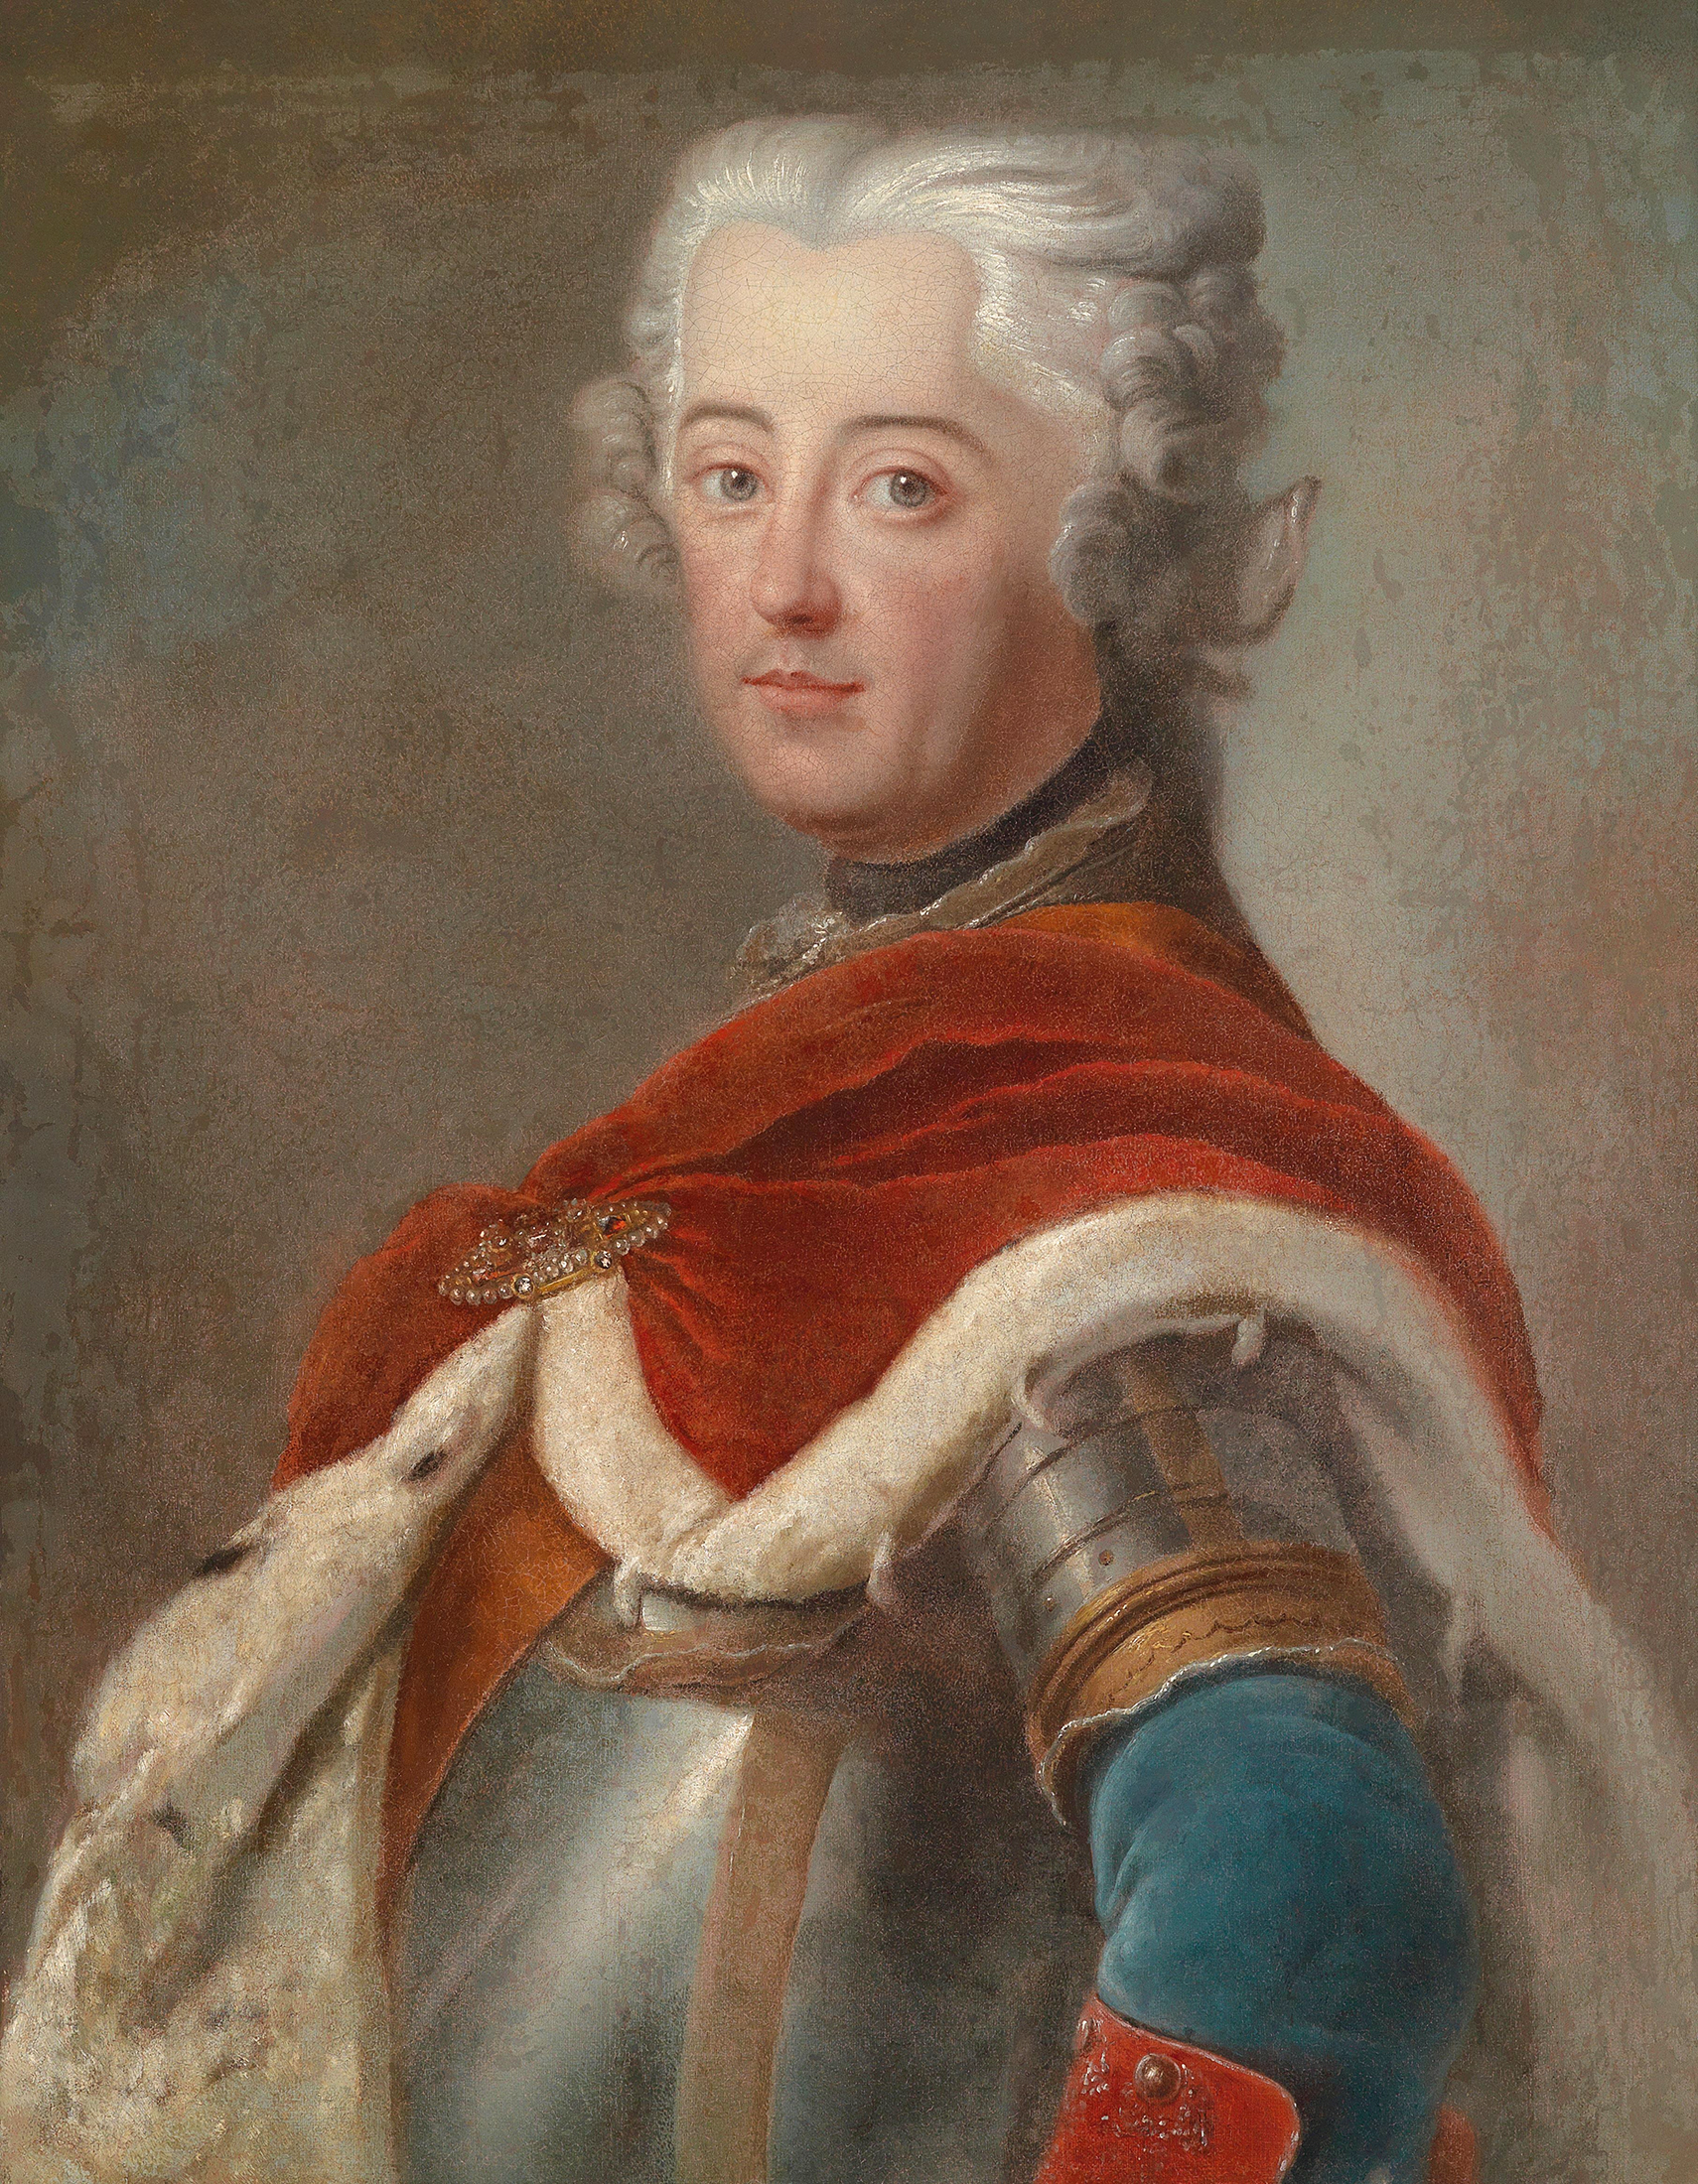 Portrait of Frederick II (1712-1786), King in Prussia Elector of Brandenburg and Prince of Neuchâtel (1740-1786) | Portraits of Kings